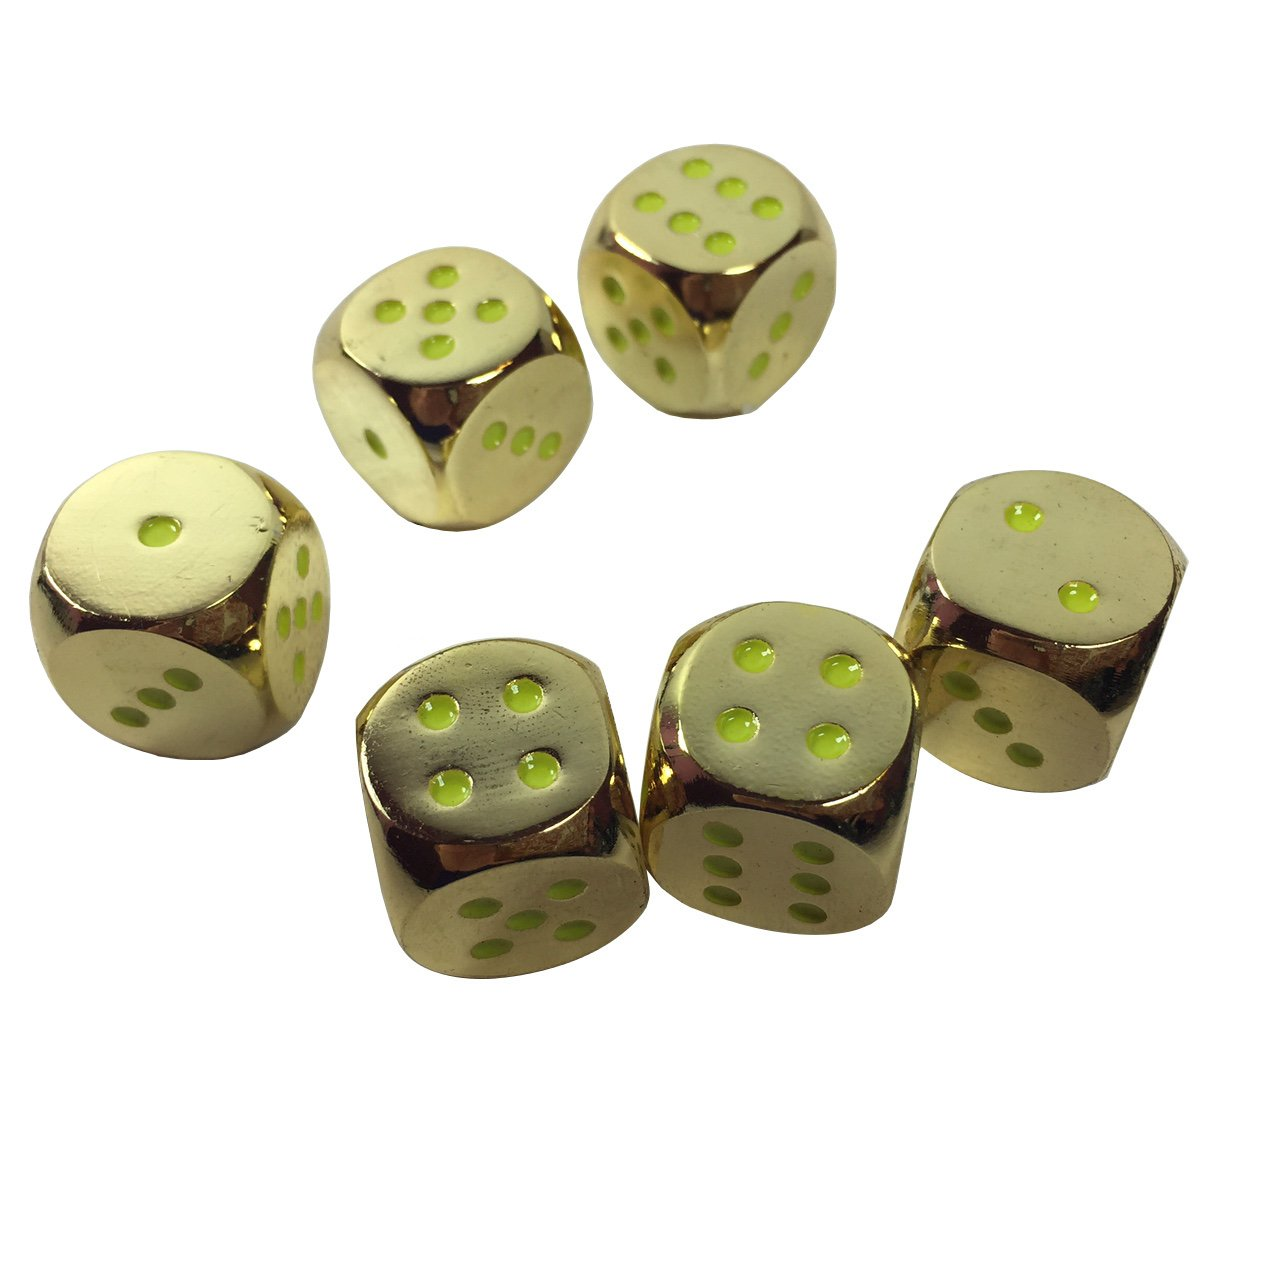 D6 pokerweights LYSB019MO9MN0-SPRTSEQIP 16mm Poker Weight Set of 6 Solid Zinc Alloy Metal Dice